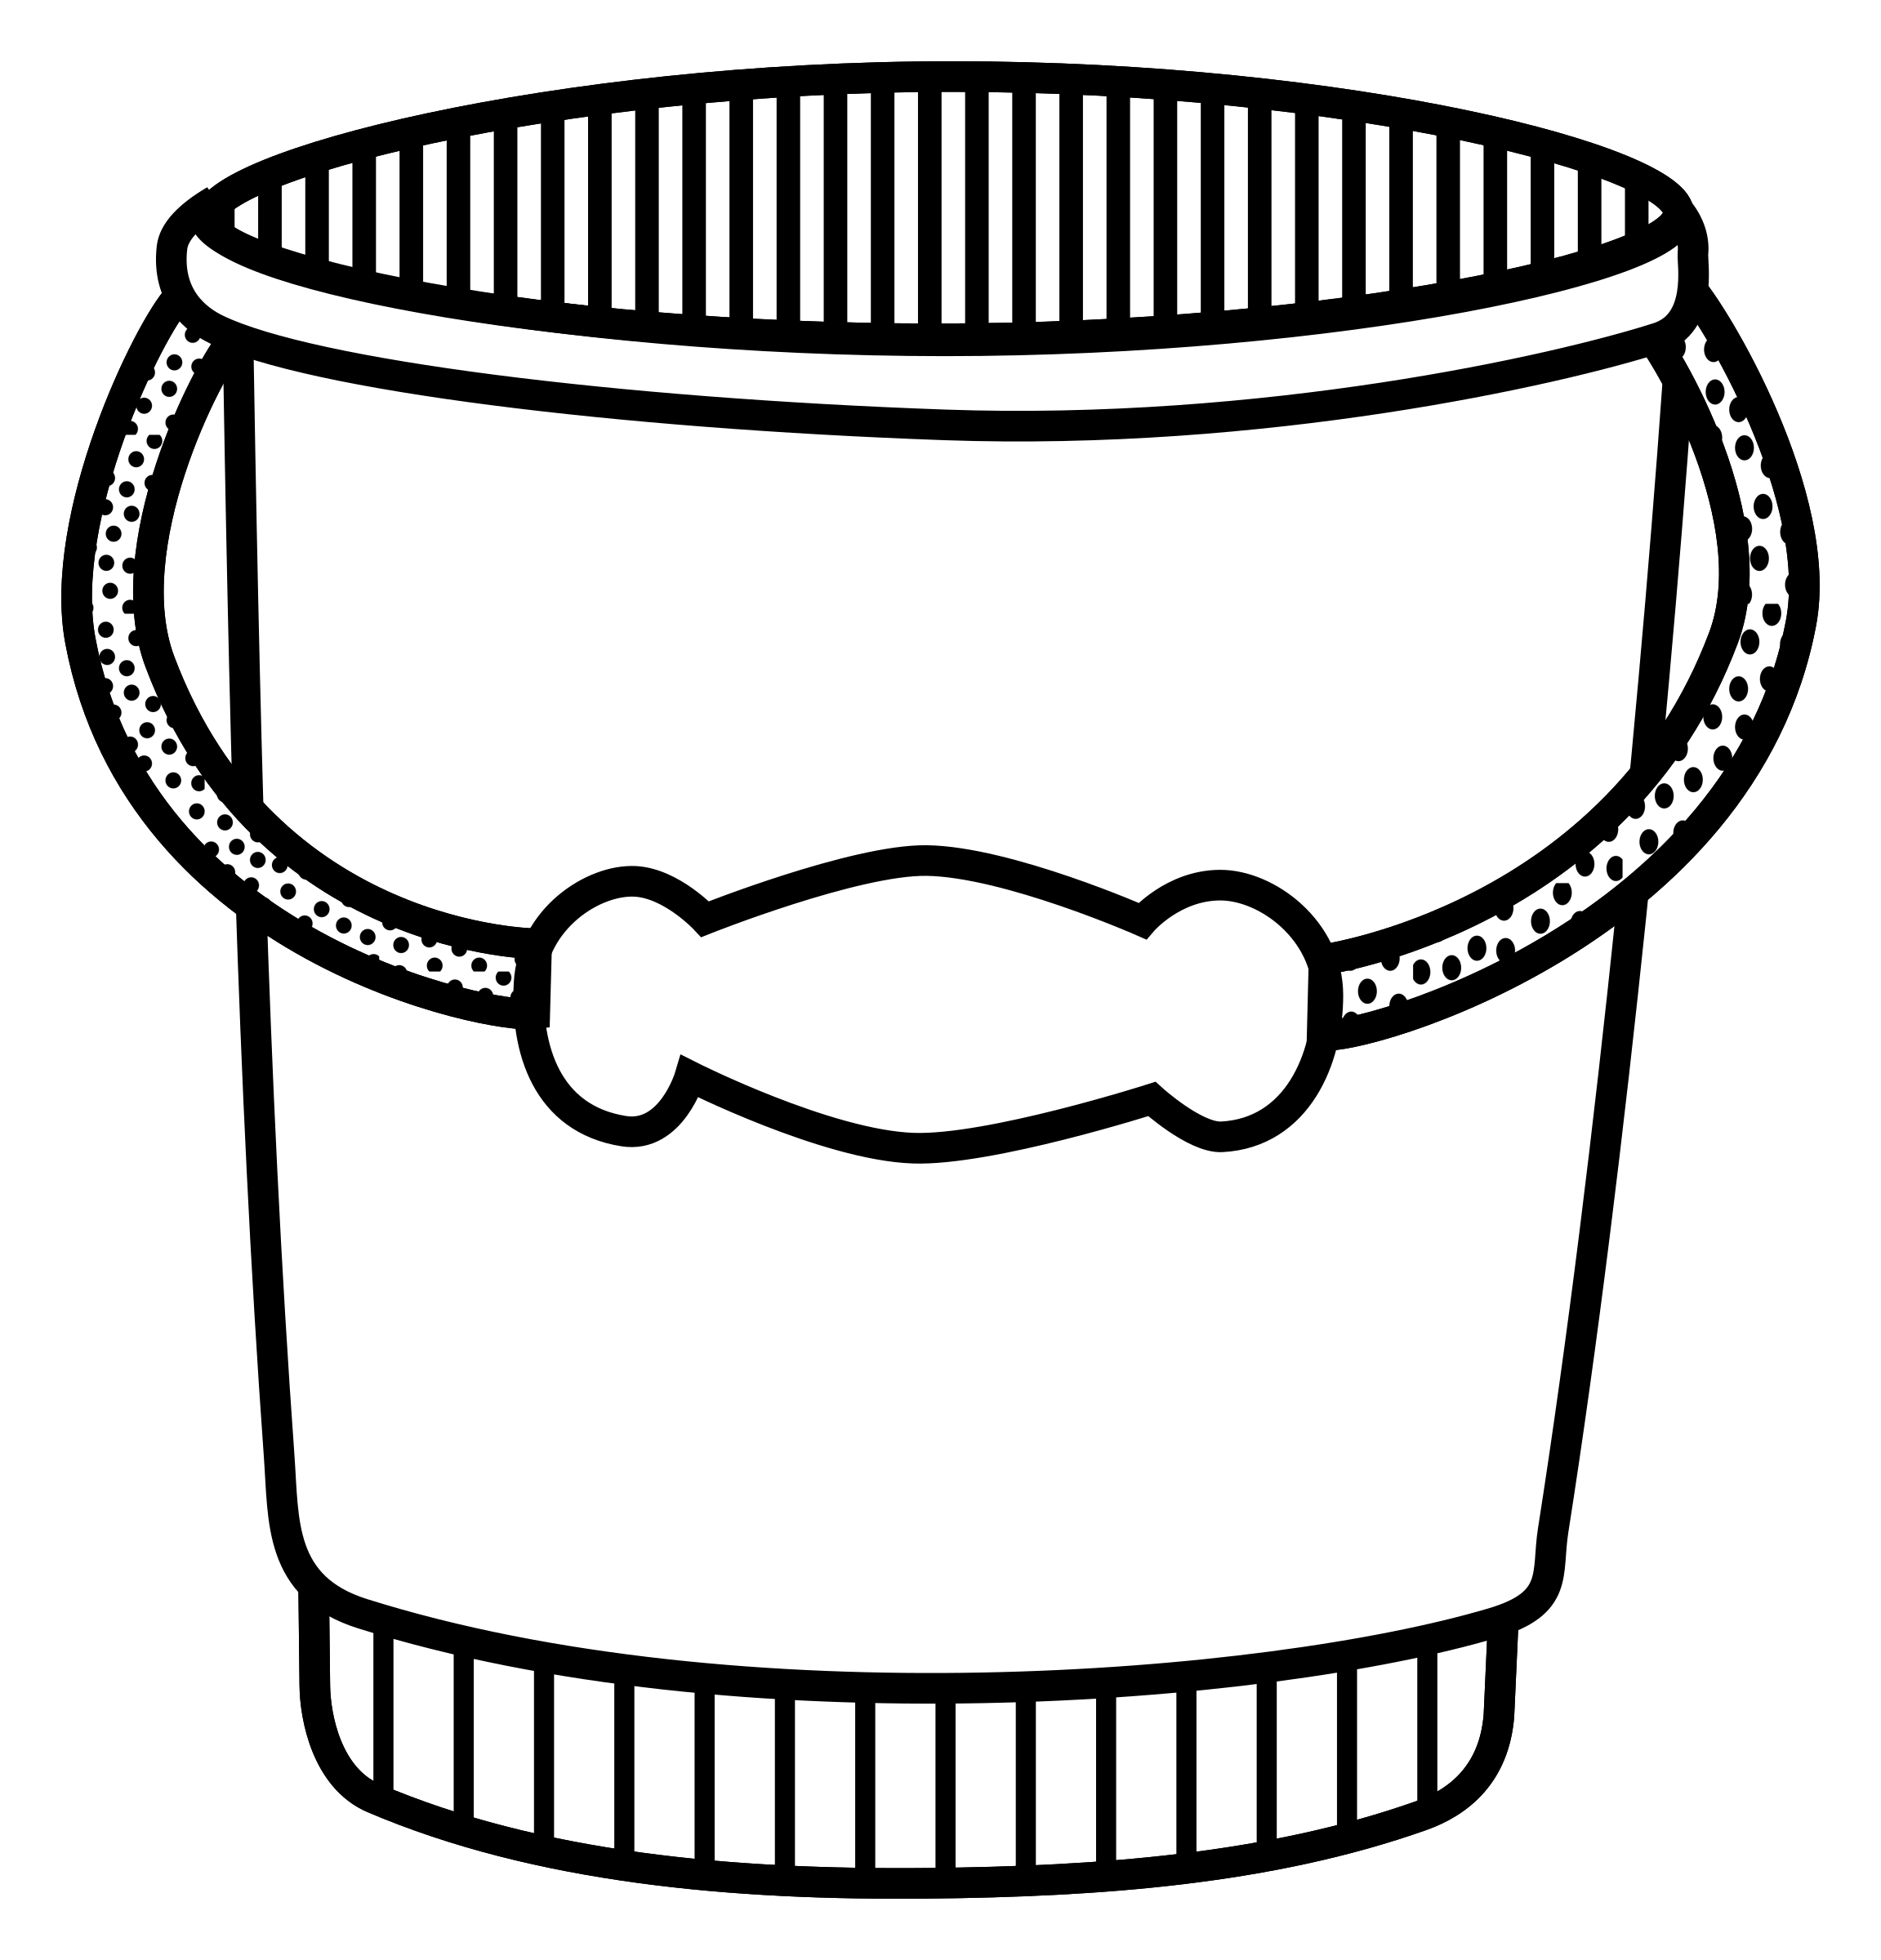 Bucket clipart black and white 4 » Clipart Station.